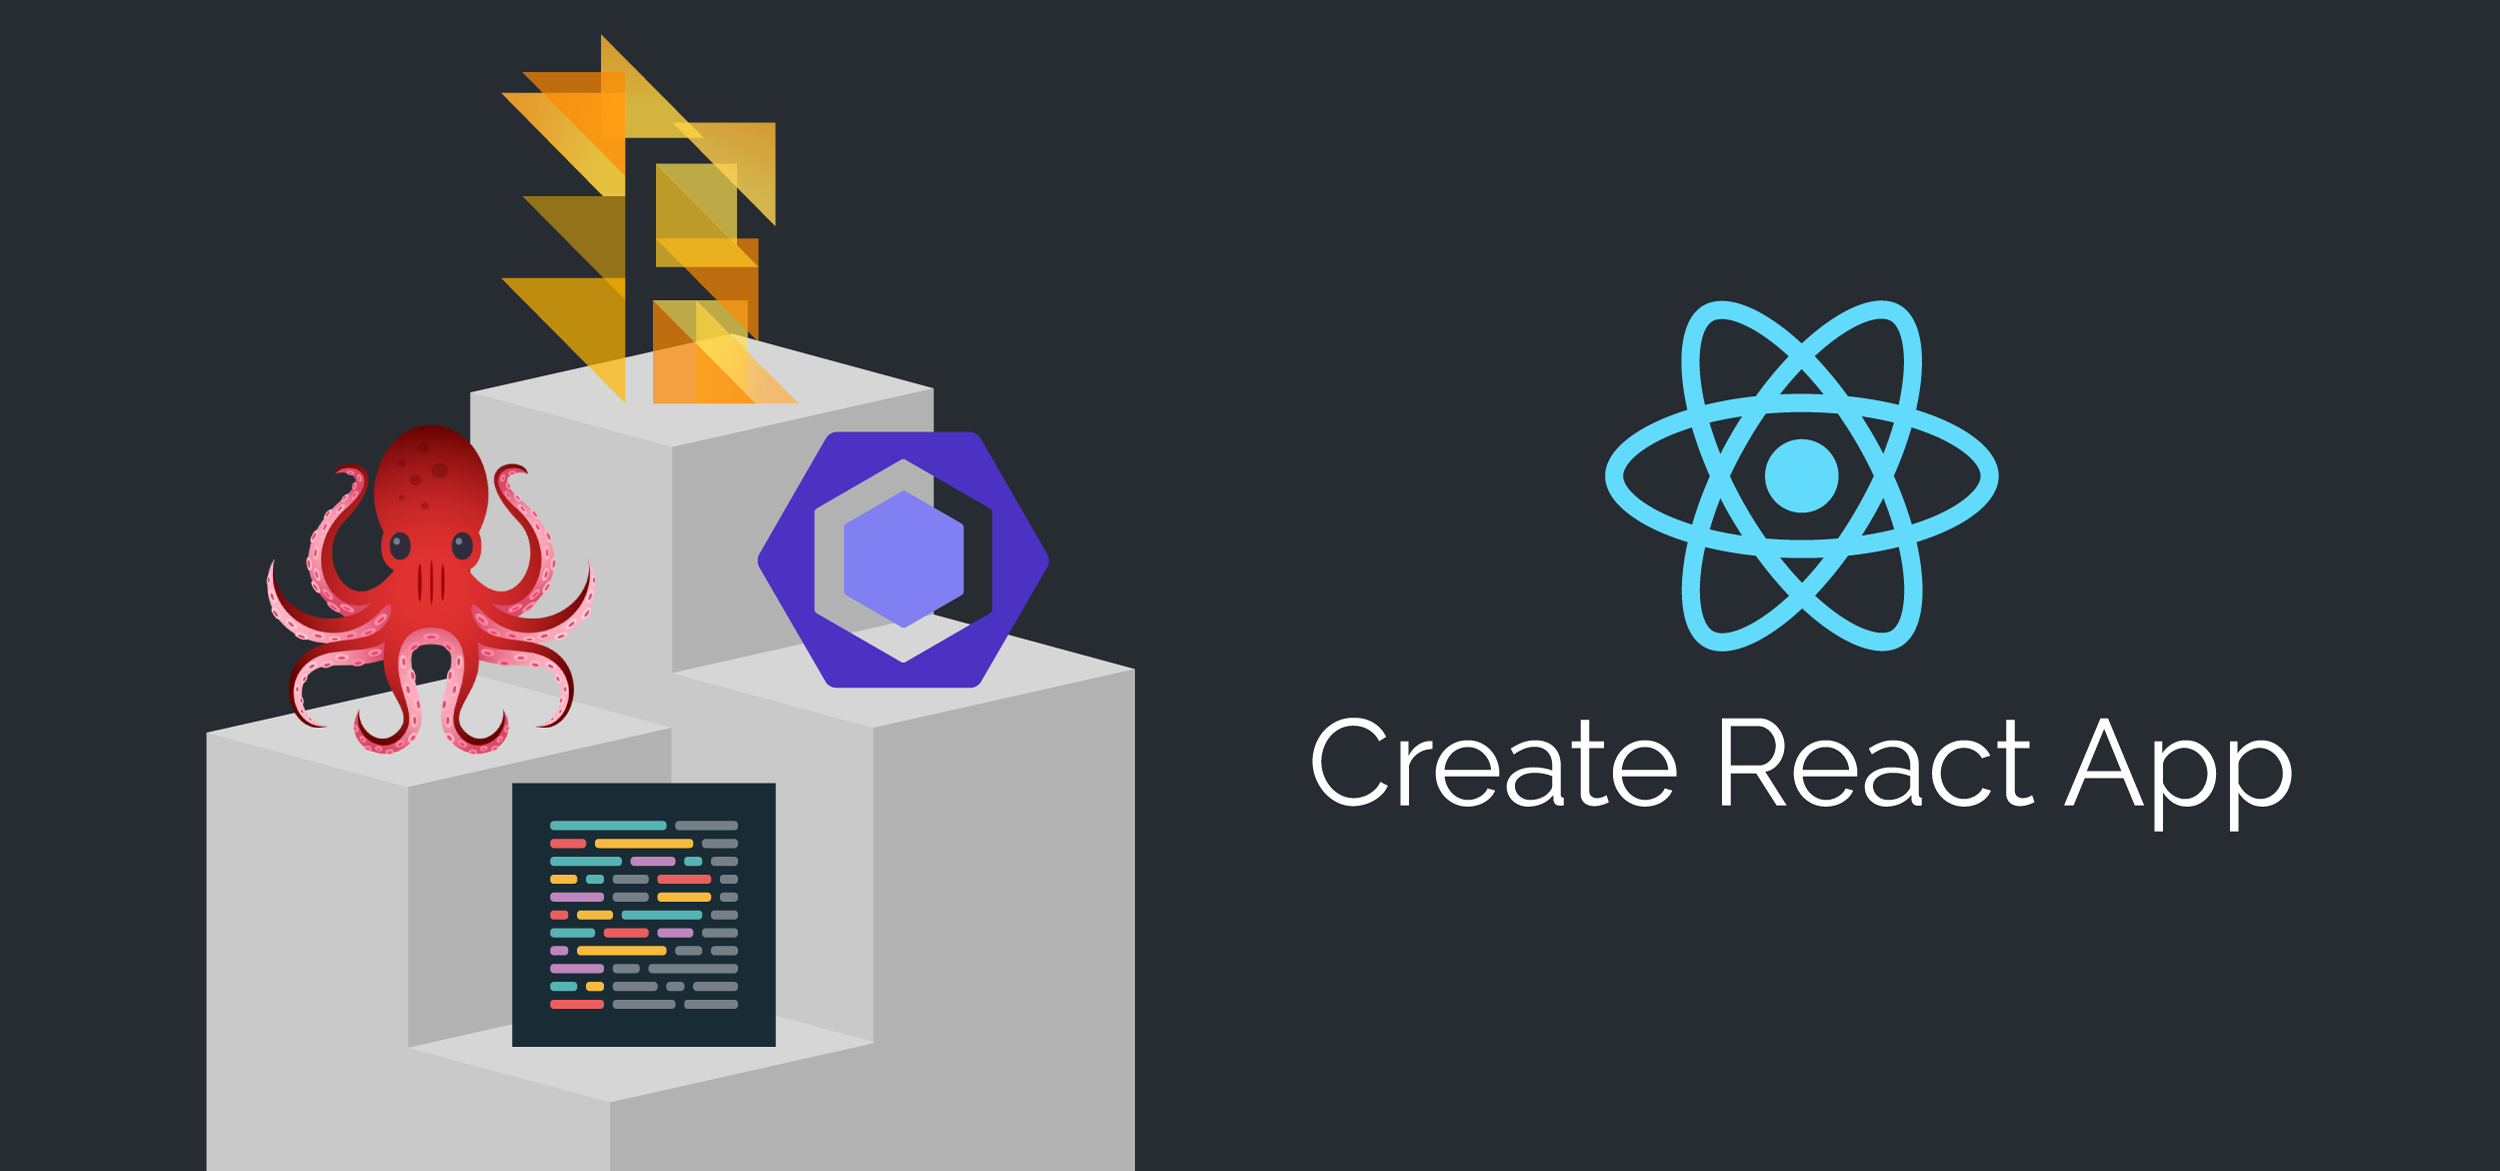 Create React App extended with Flow, ESLint, Prettier and React Testing Library.